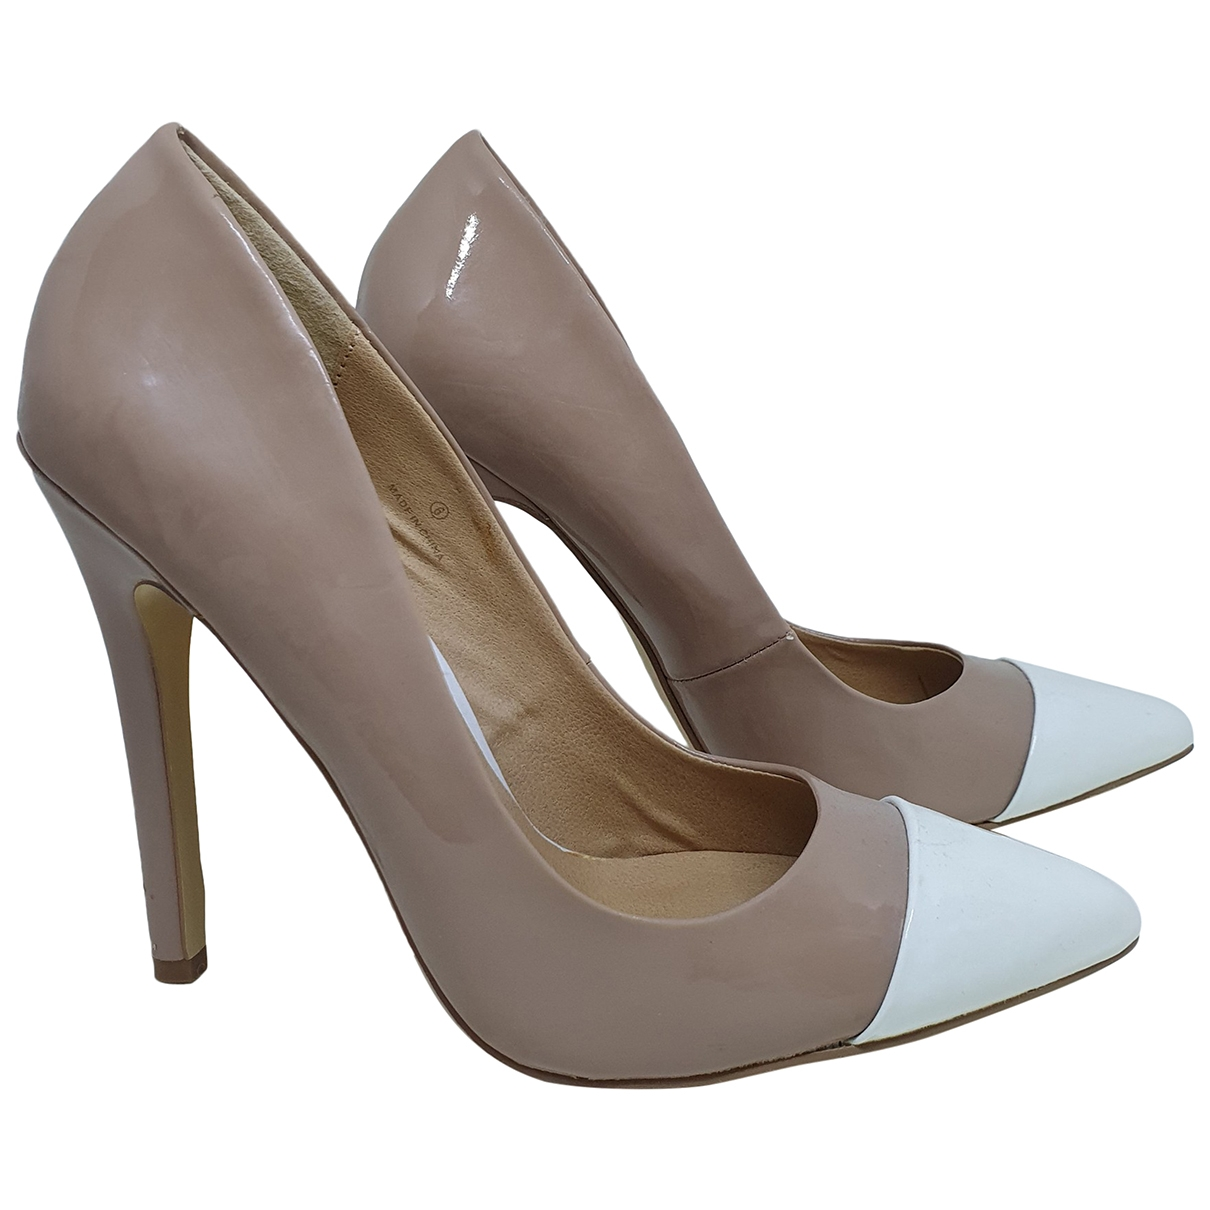 Asos \N Beige Patent leather Heels for Women 38.5 EU